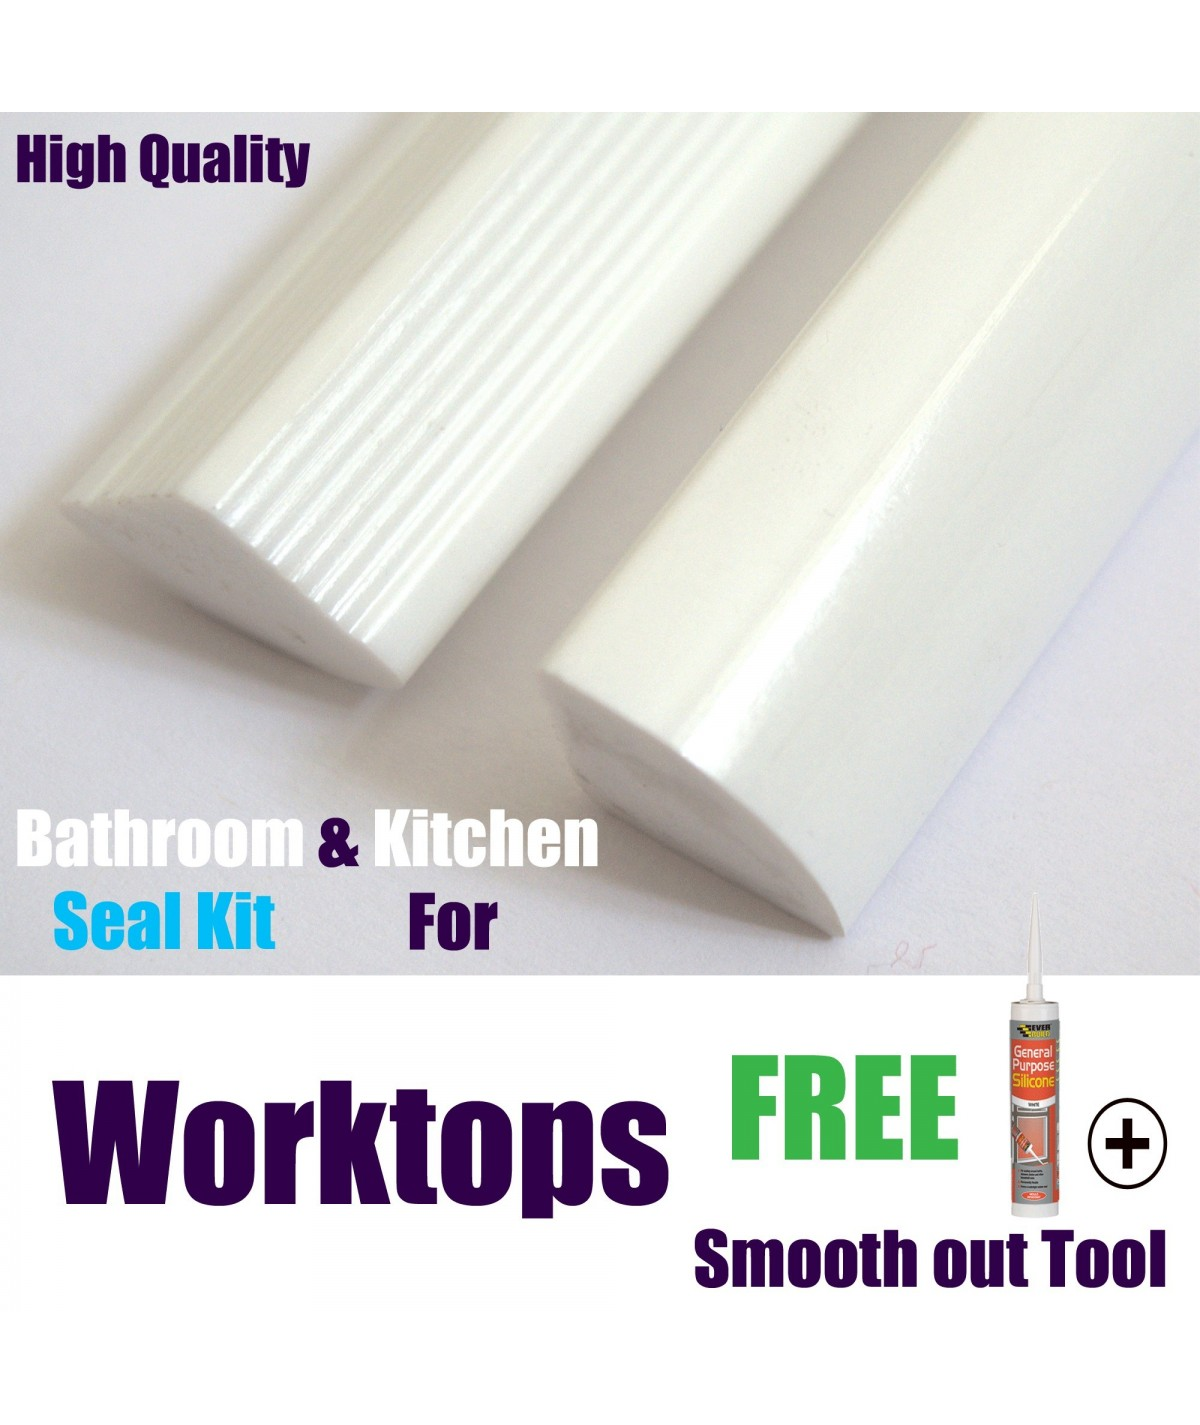 Solid worktop Seal 15mm profile gloss white finish